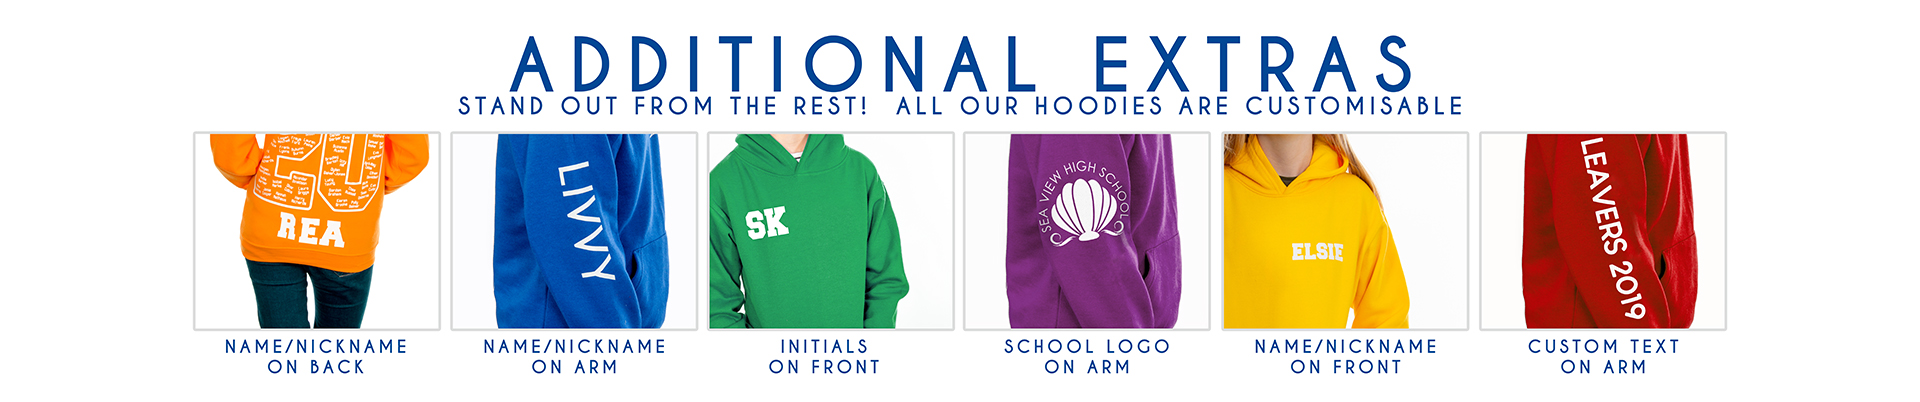 Additional Extras Hoodies